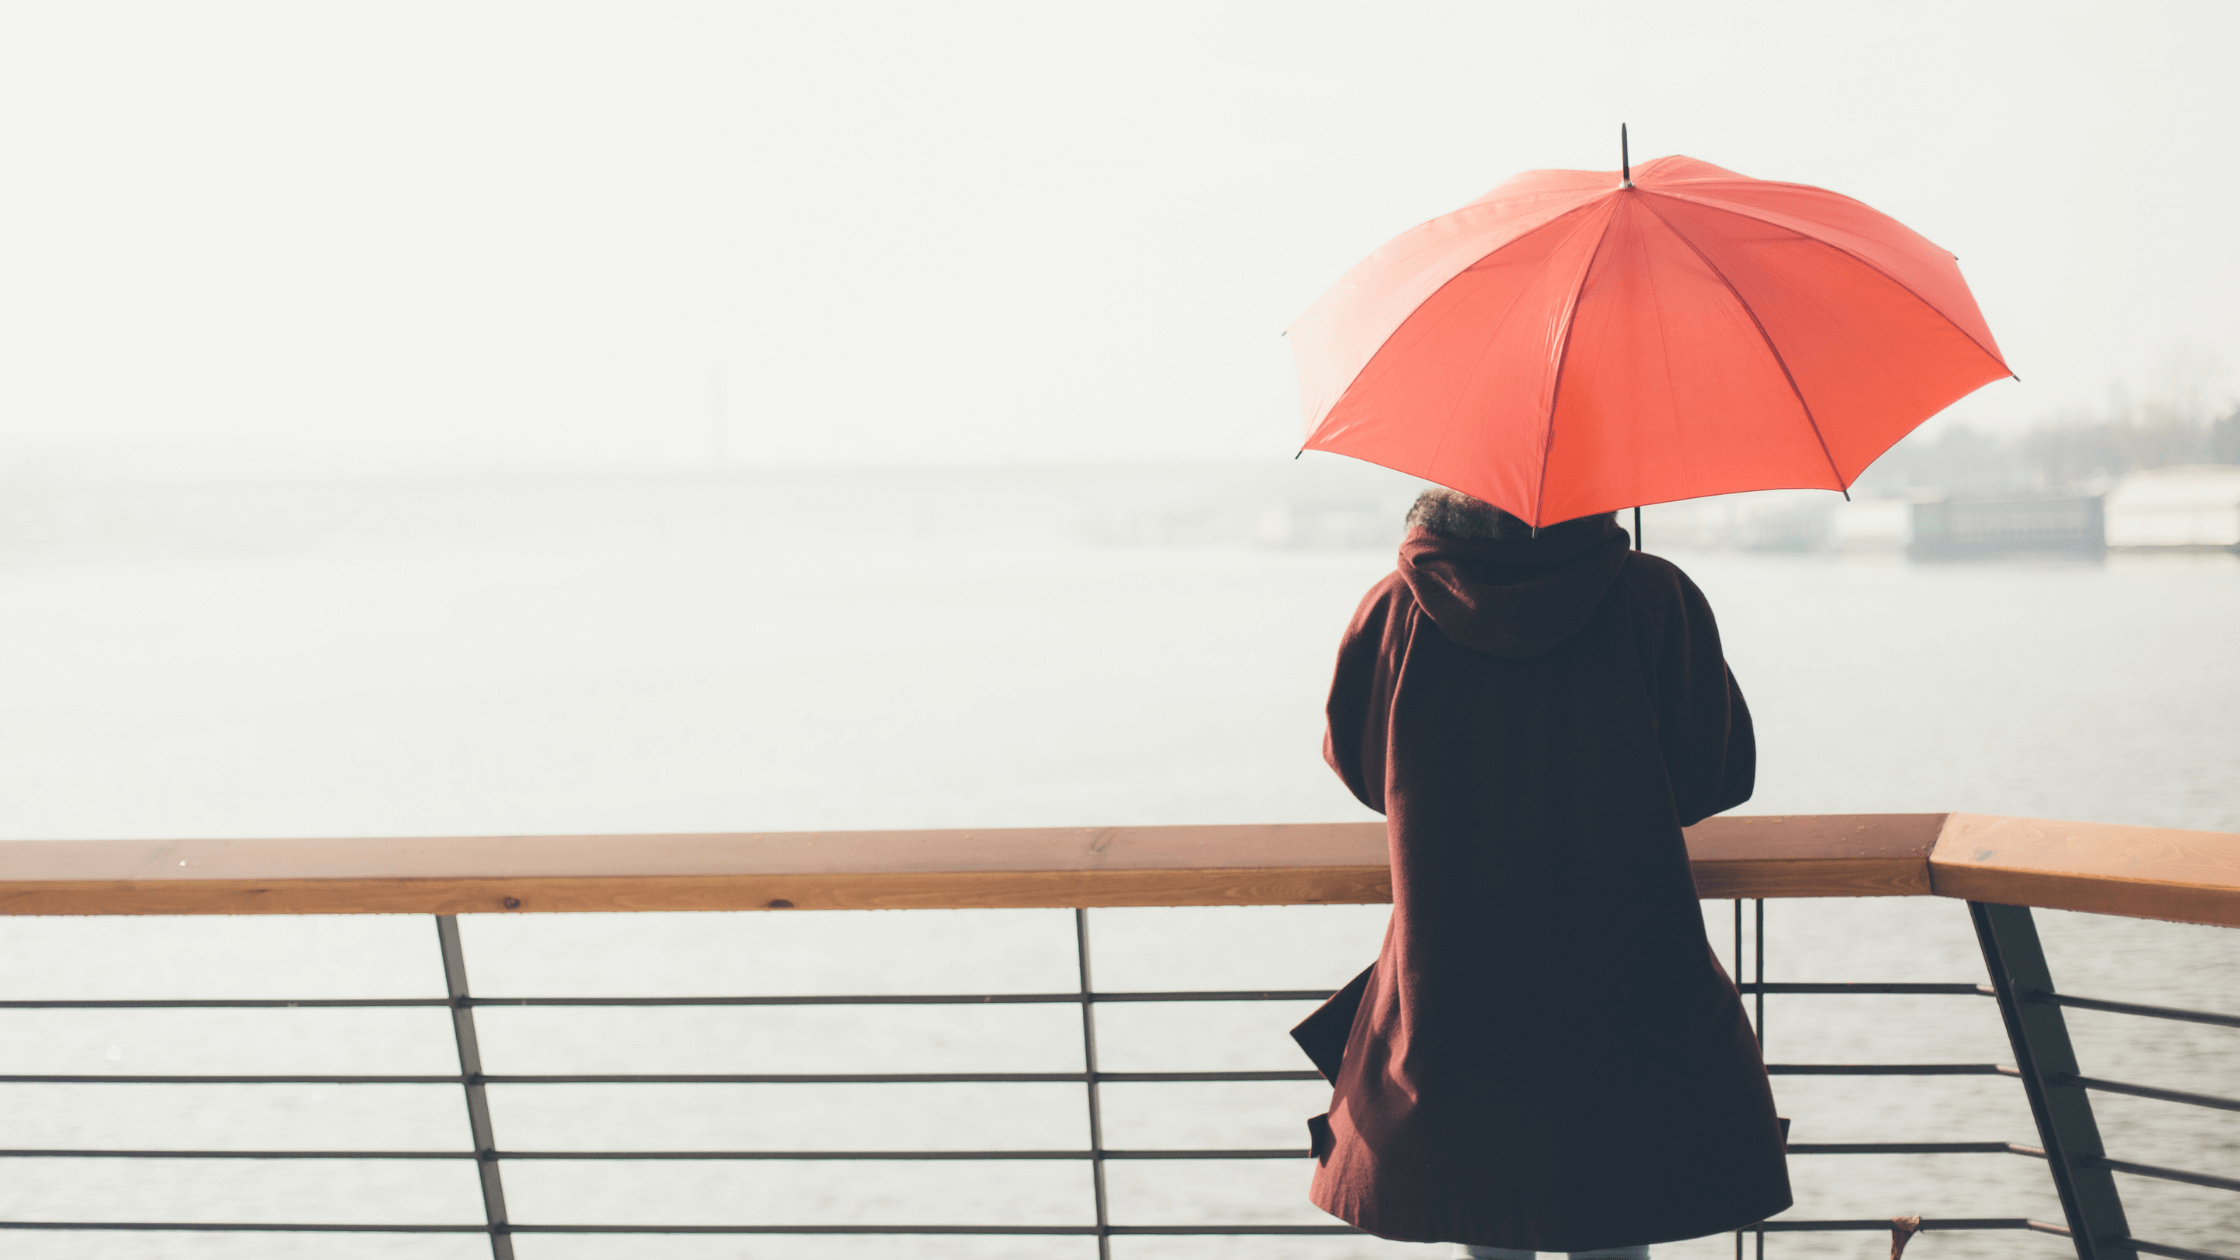 lady with umbrella-how to get over disappointment